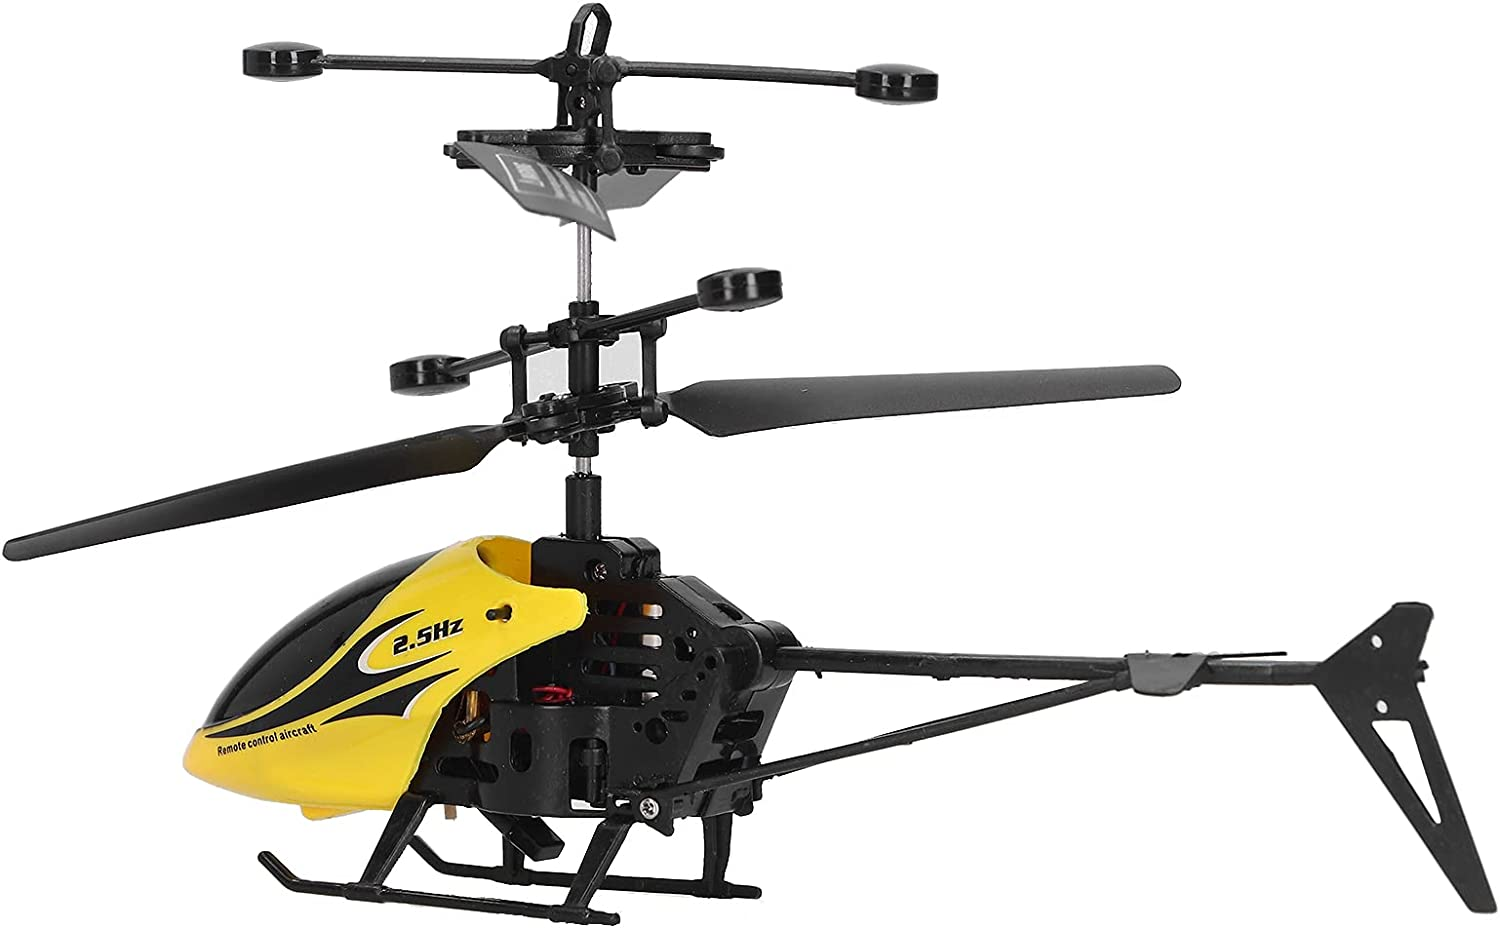 Haowecib RC Helicopter Charging Remo Direct sale of manufacturer Flying Max 57% OFF Aircraft